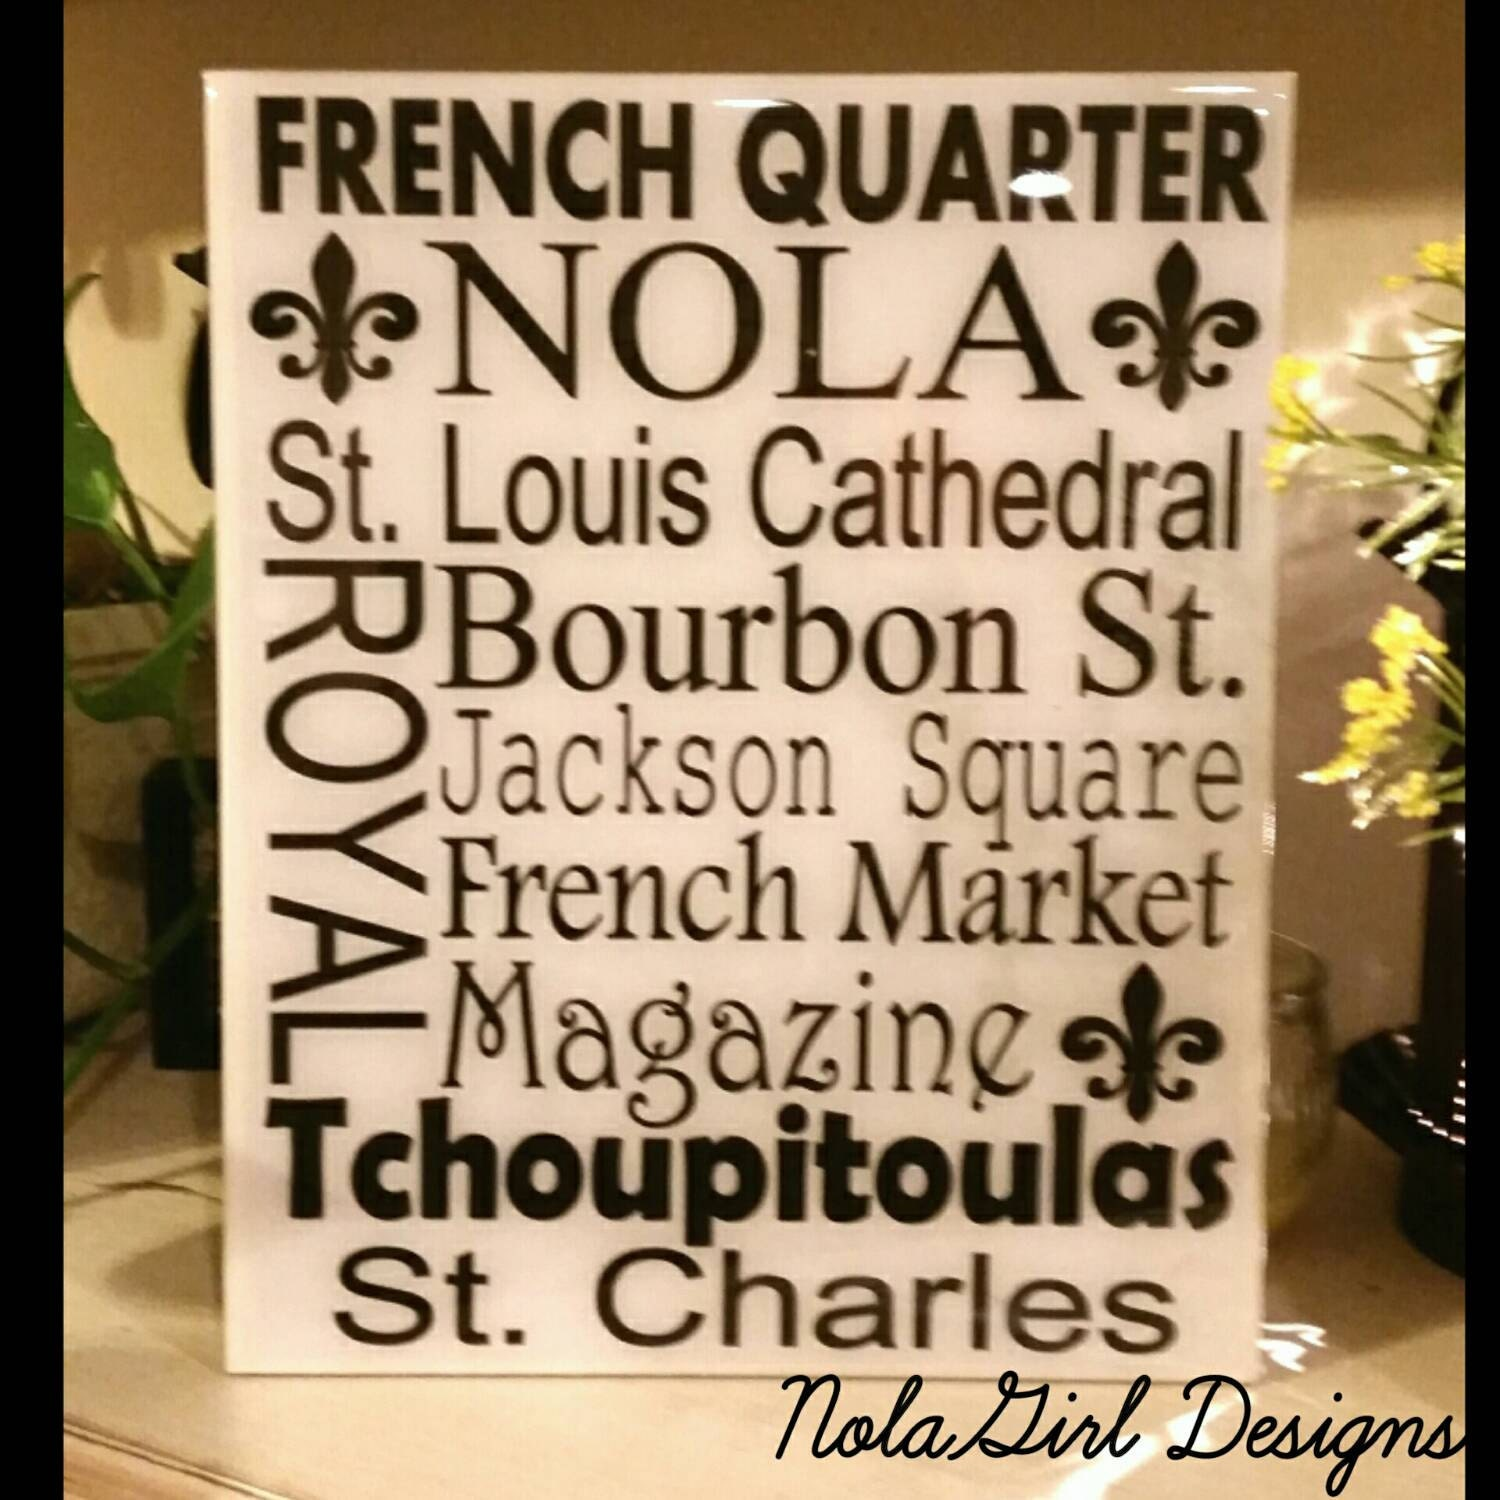 Home Decor New Orleans: New Orleans, Streets, Places, Decorative Tile, Nola